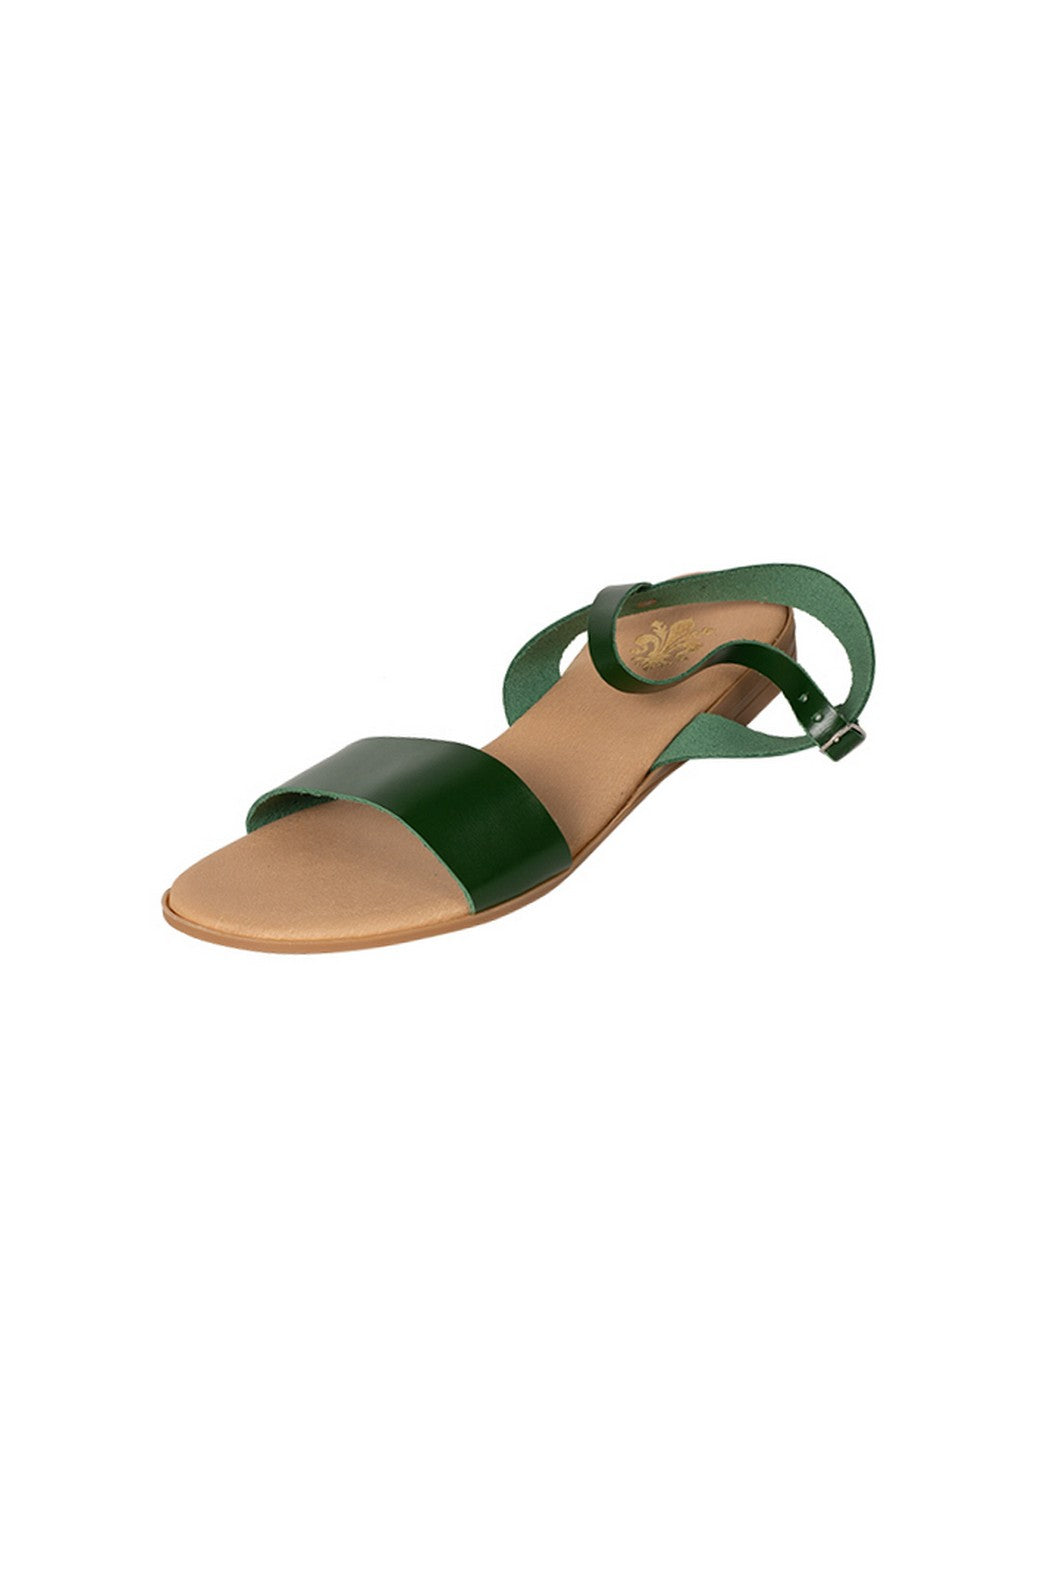 Italian leather bottle green casual sandal with ankle strap